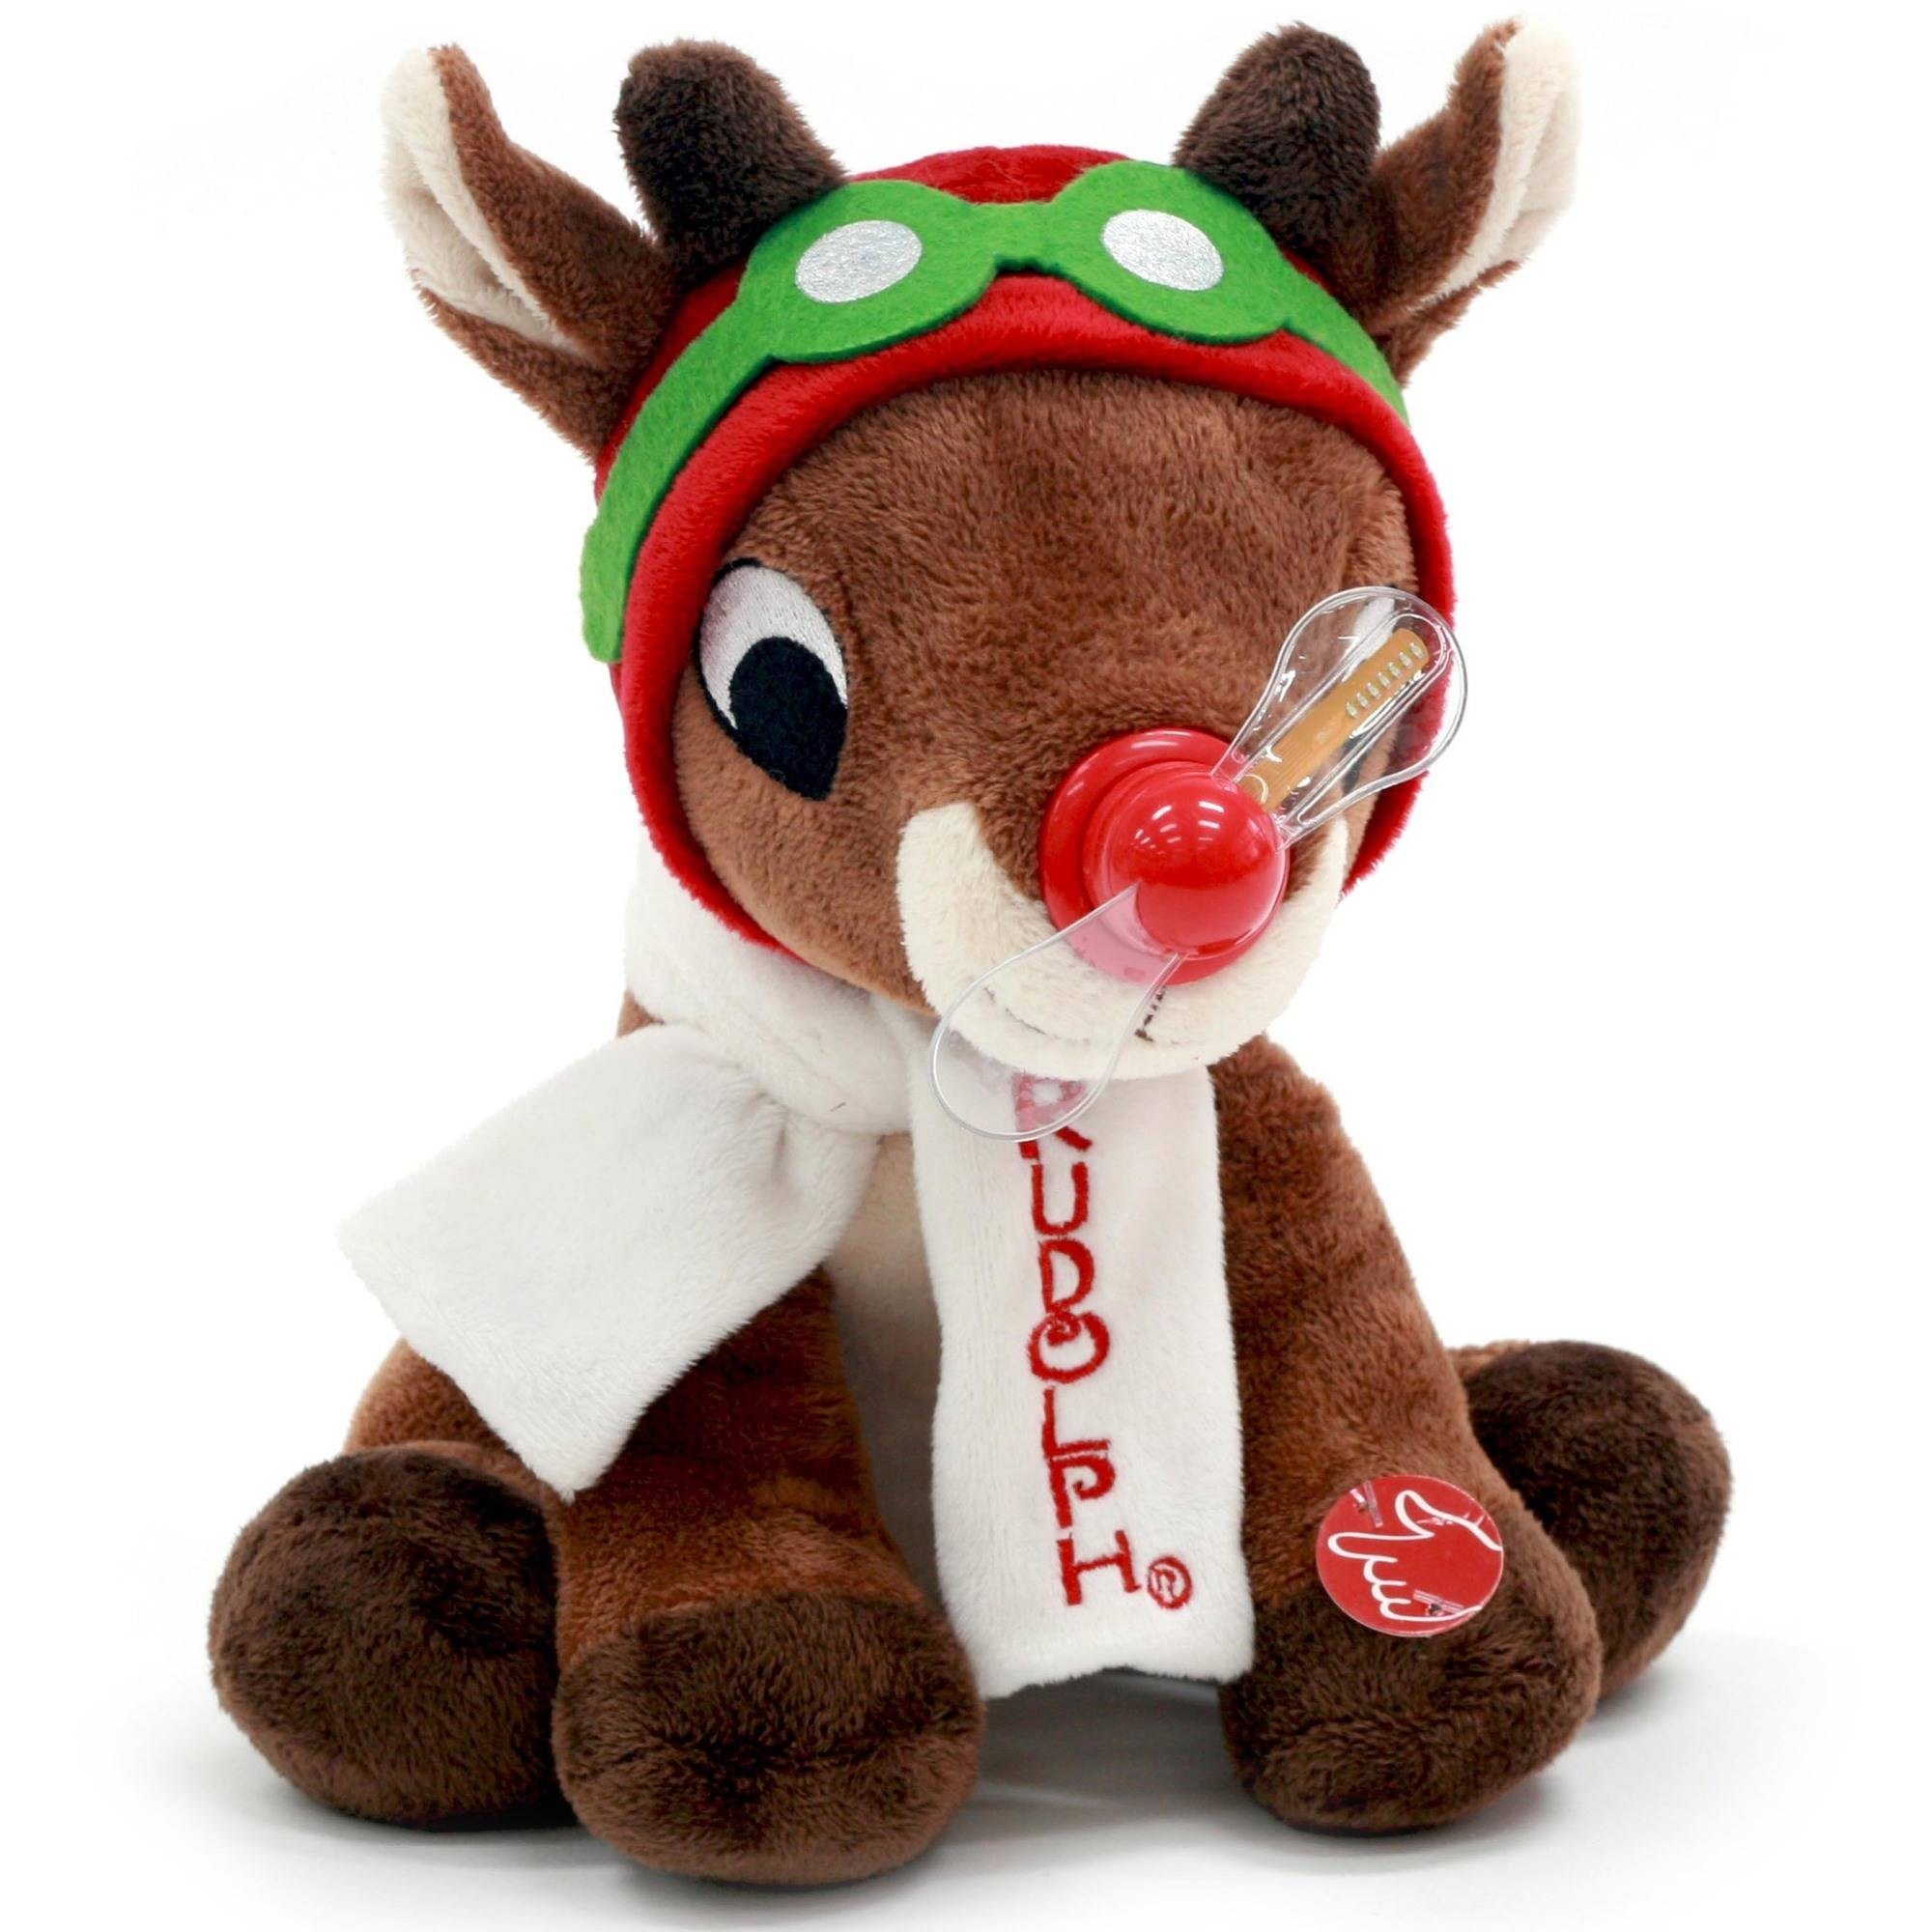 Rudolph The Red Nosed Reindeer 9 inch Animated Rudolph with Message Fan